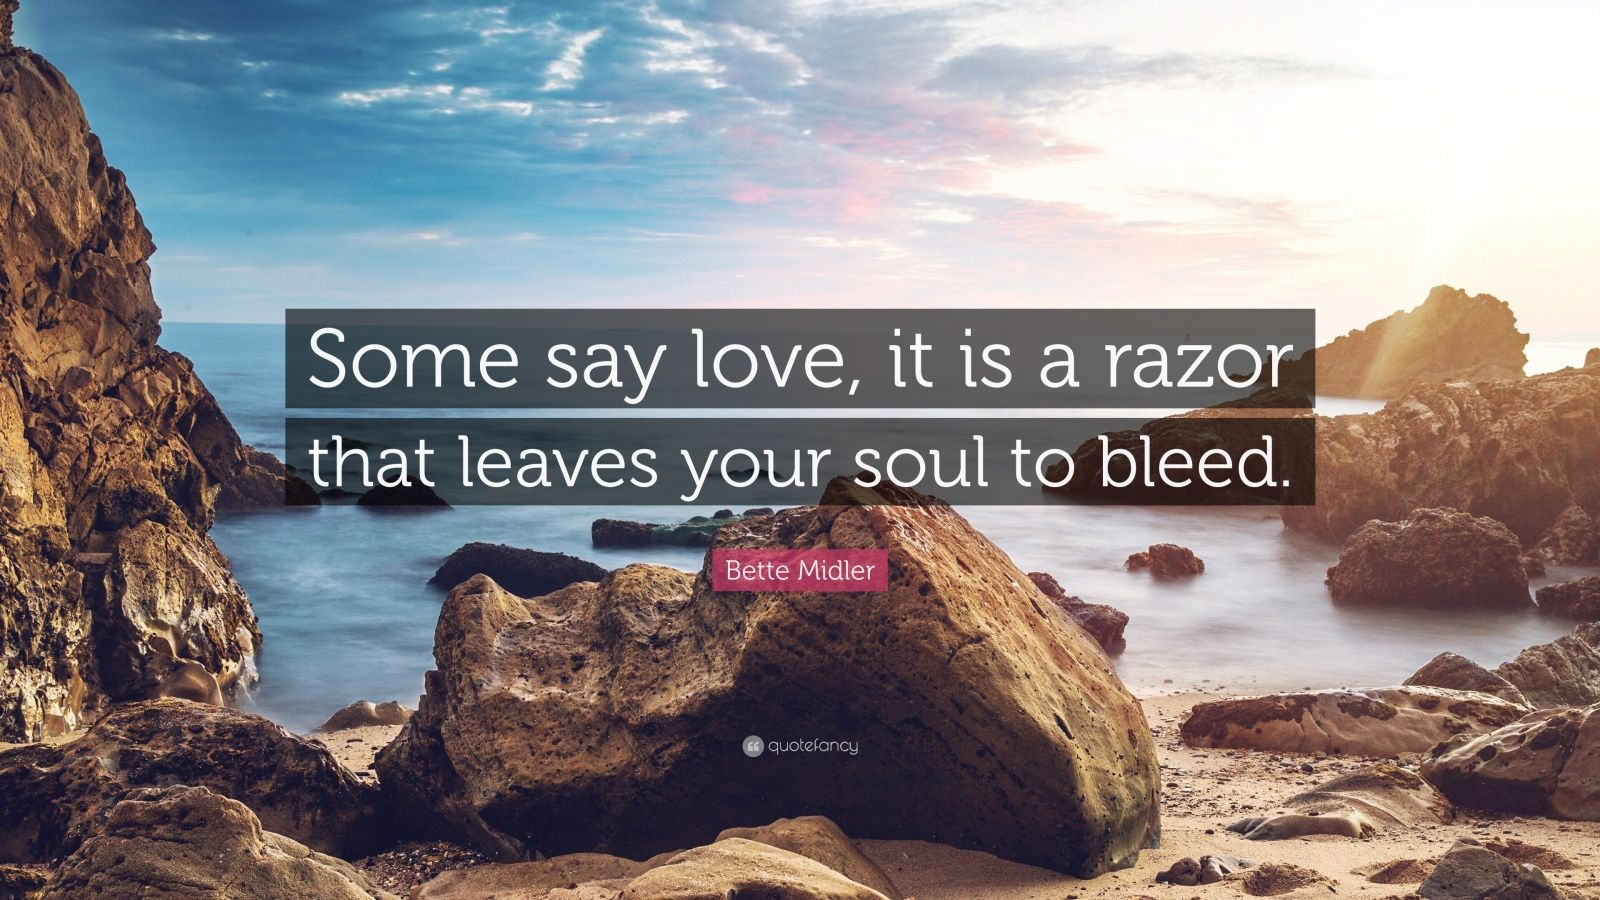 """Bette Midler Quote: """"Some say love, it is a razor that leaves your soul to bleed."""""""